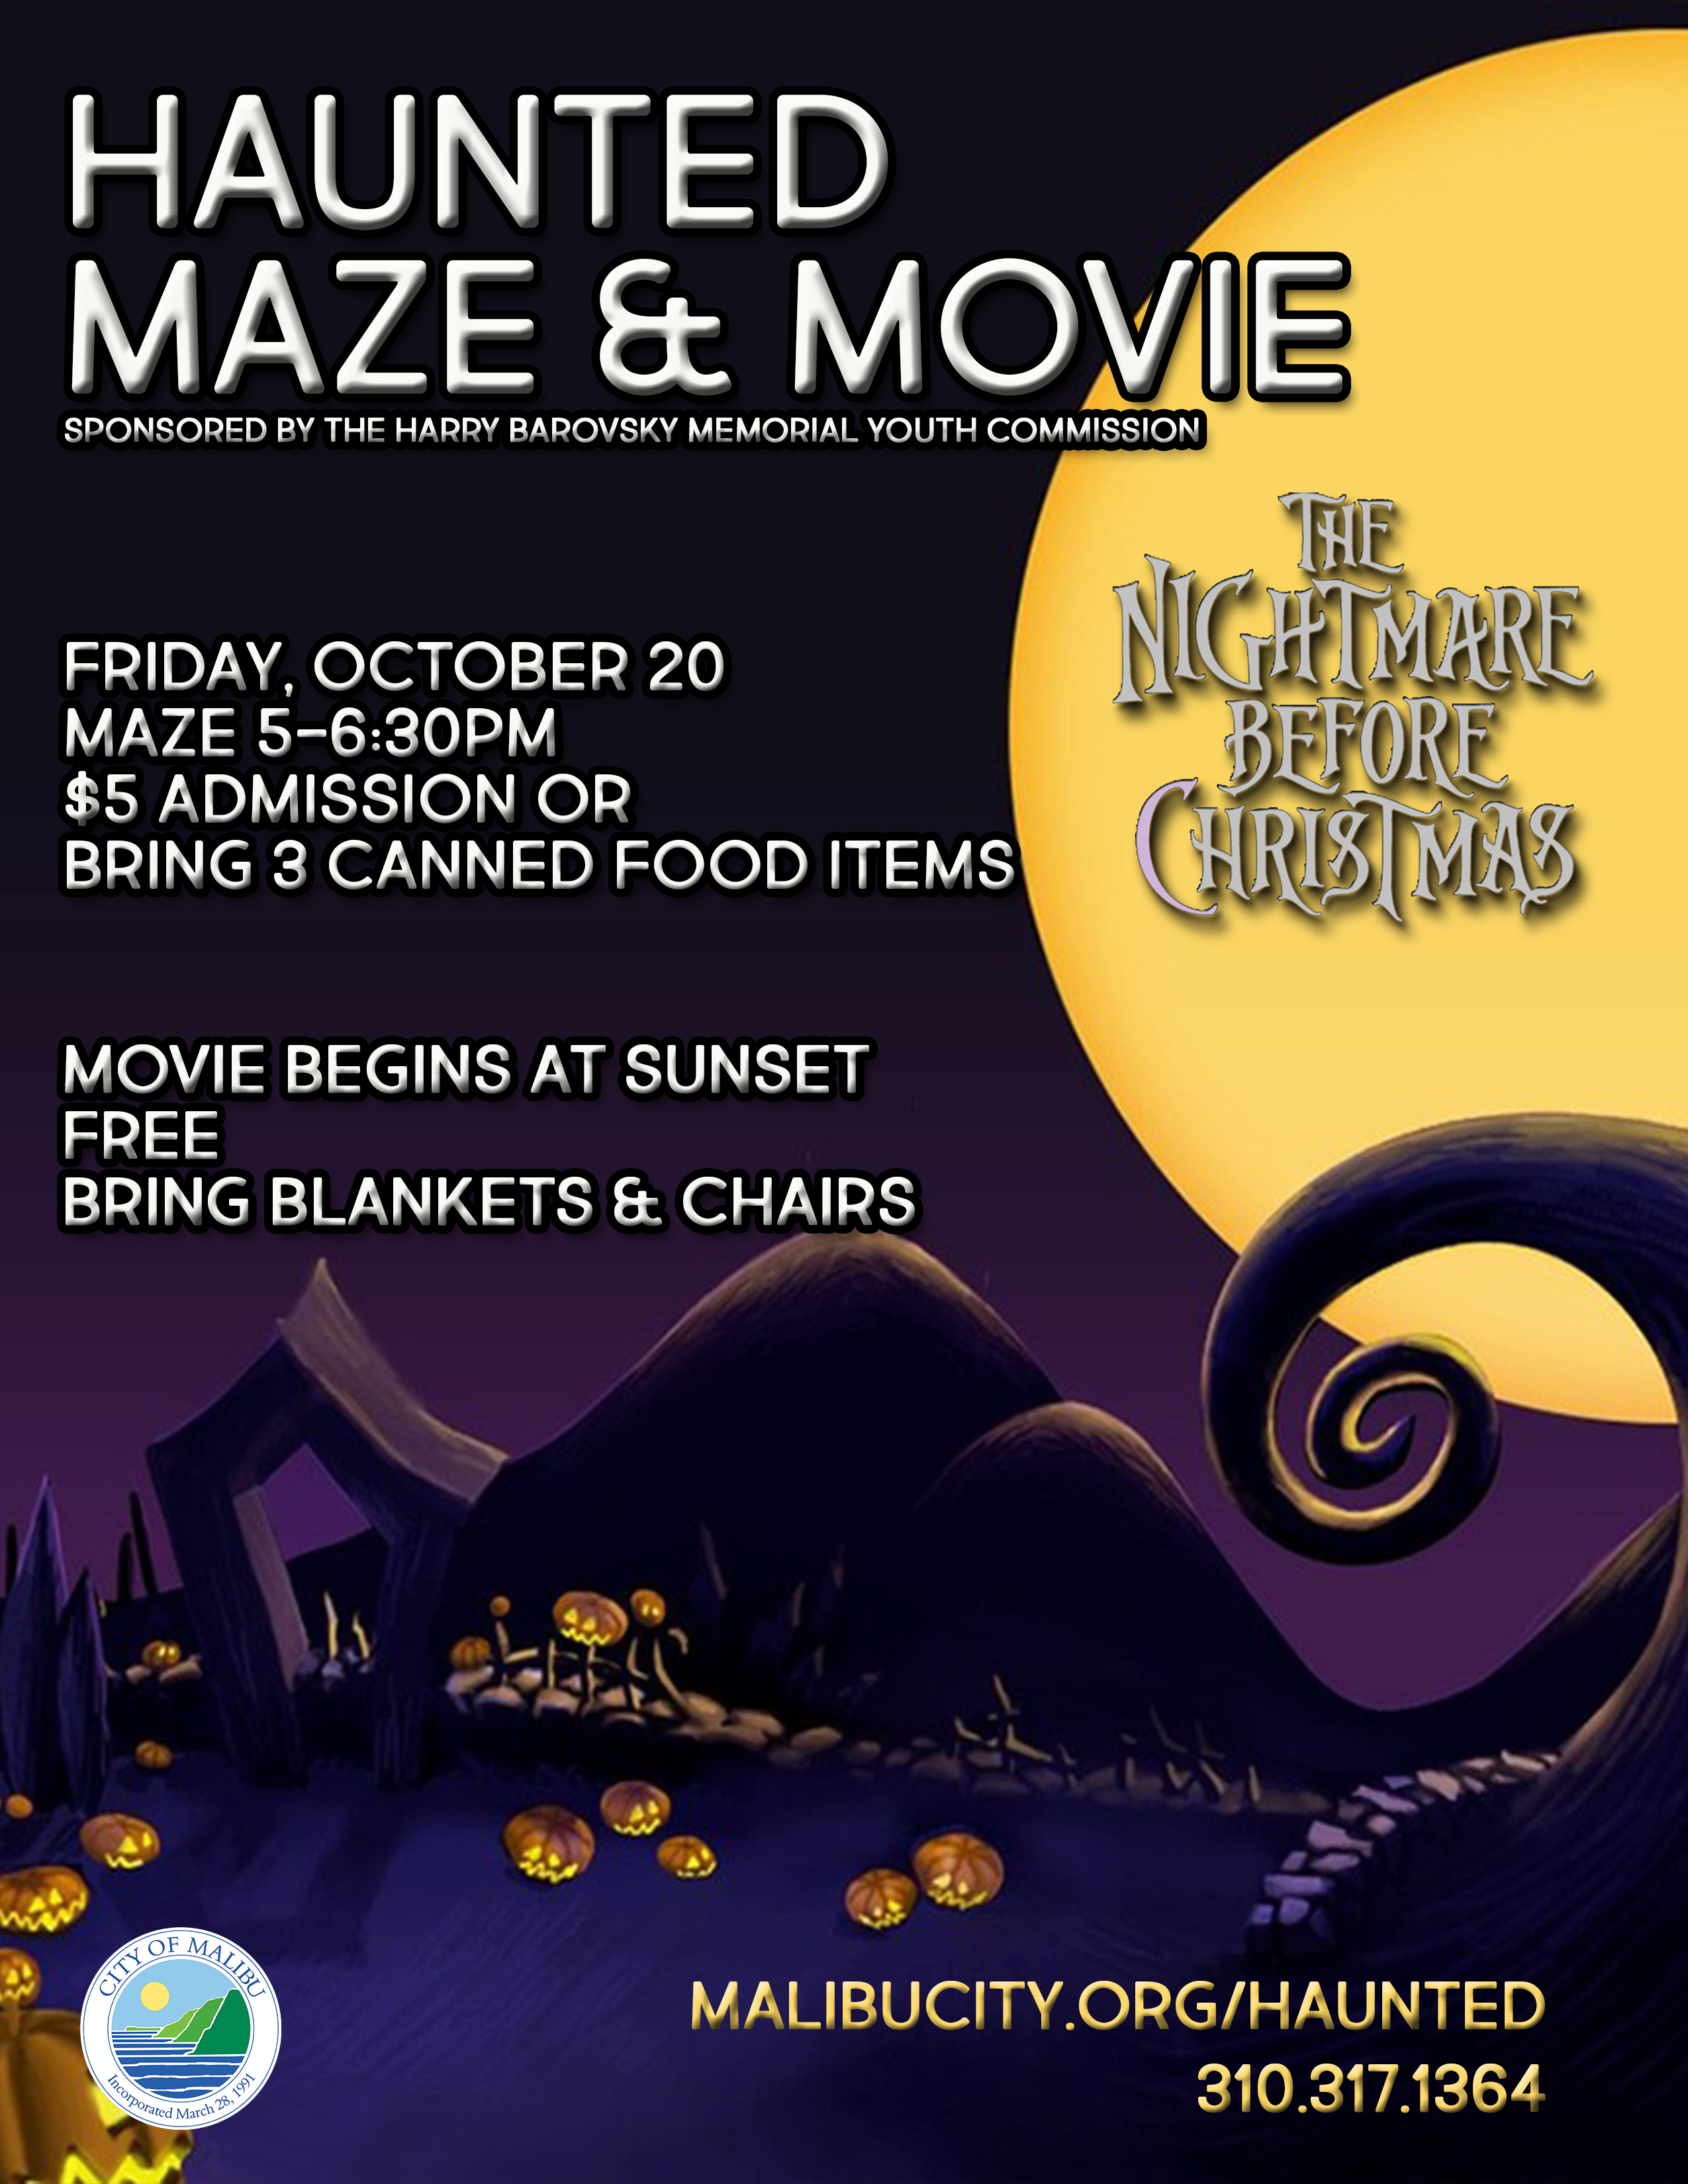 Haunted Maze and Movie Flyer 2017.jpg